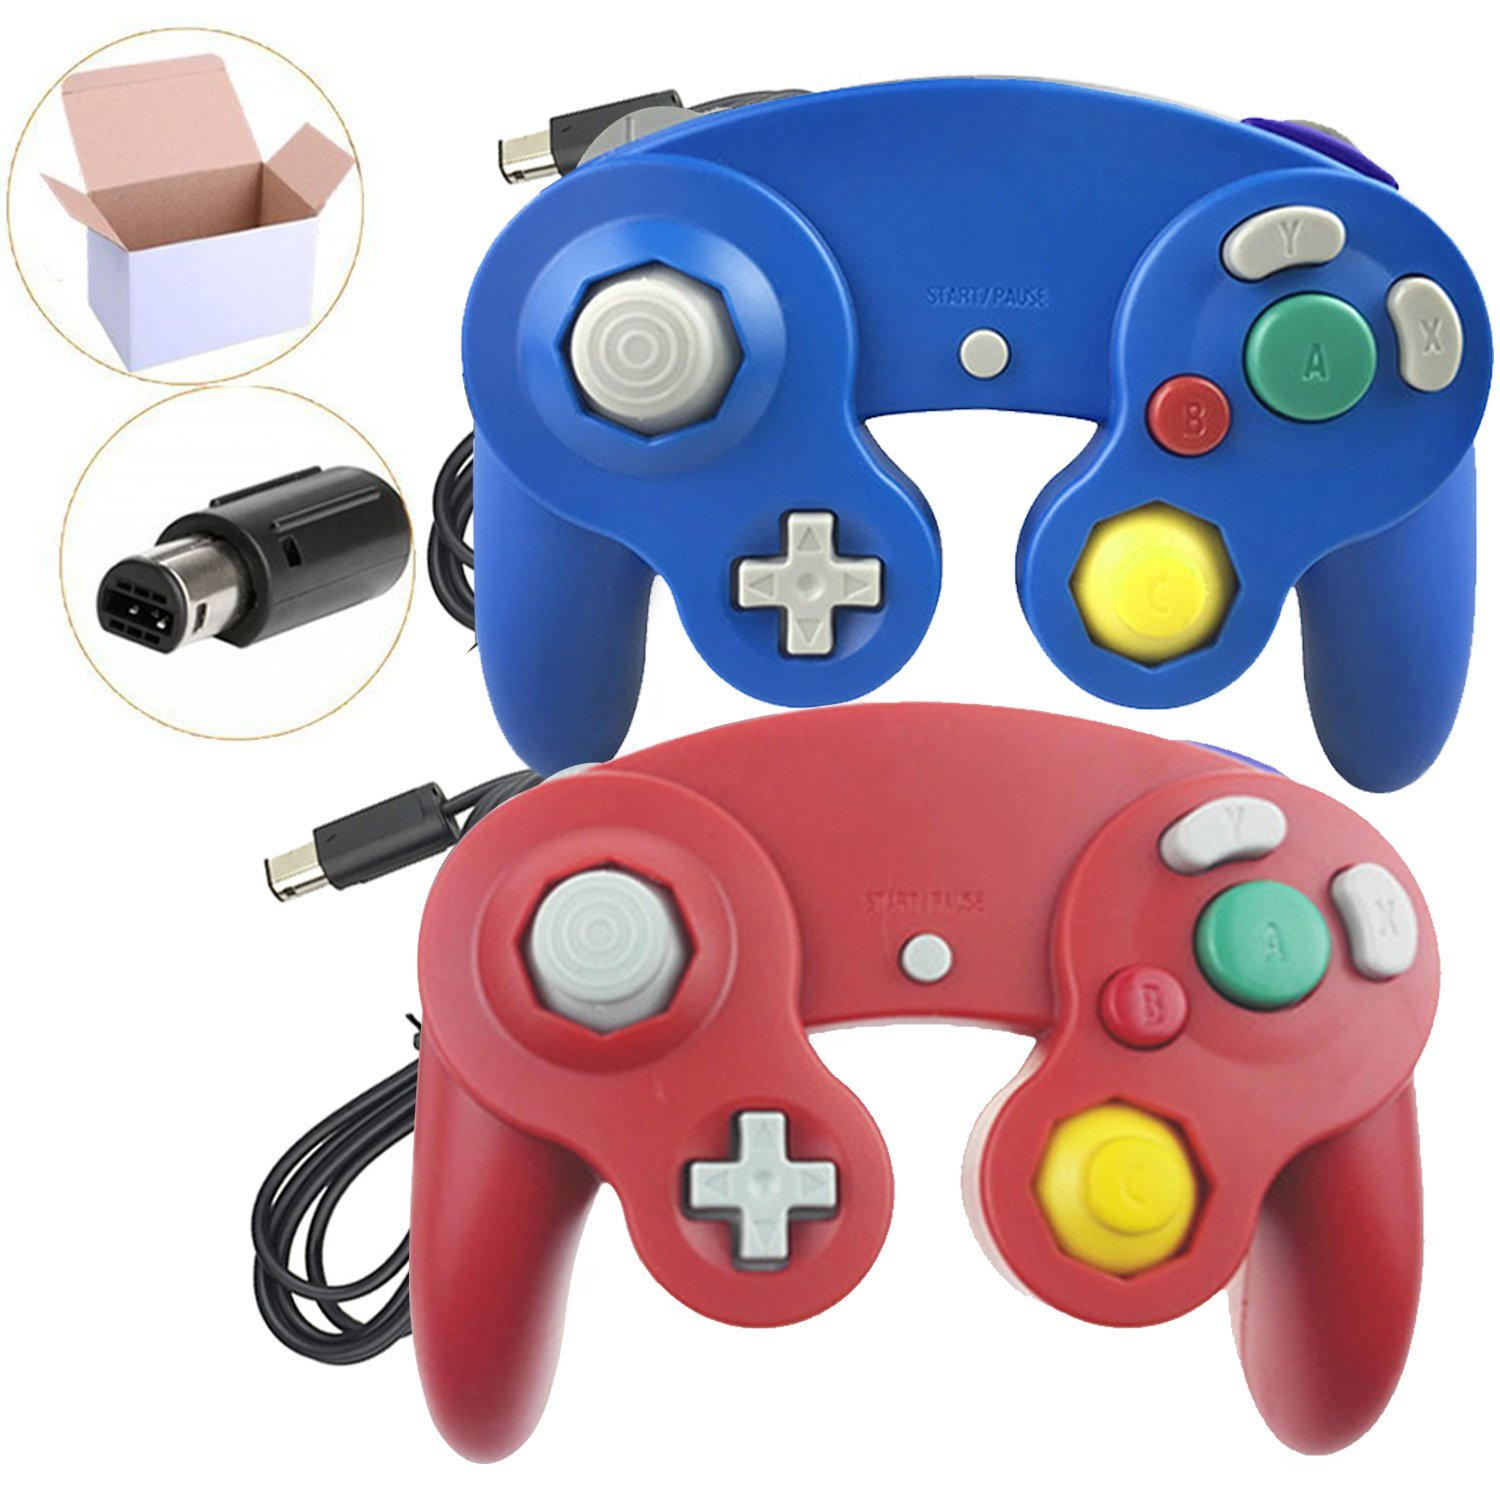 Poulep 2 Packs Classic Wired Gamepad Controllers for Wii Game Cube Gamecube Console (Blue and Red)